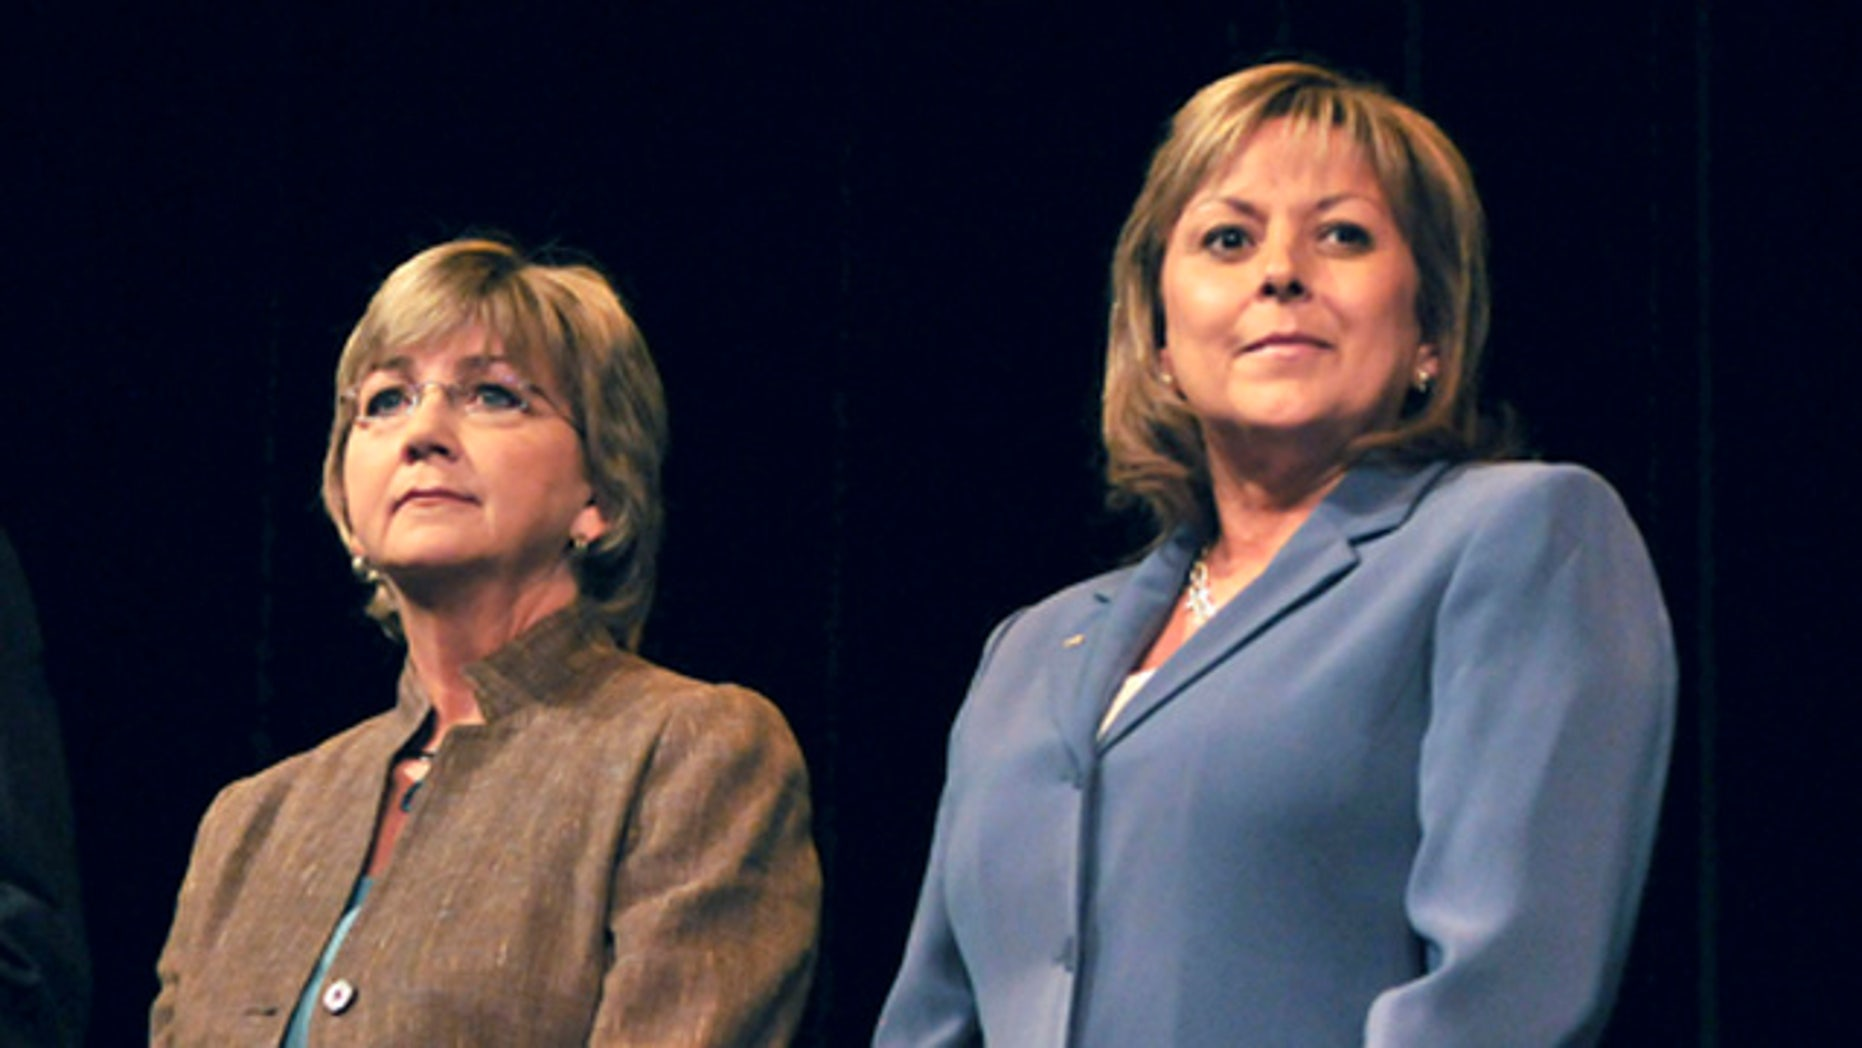 FILE - In this Aug. 19, 2010 file photo, gubernatorial candidates Diane Denish (D), left, and Susana Martinez (R) prepare to square off during the New Mexico Gubernatorial Education Debate in Albuquerque, N.M. In a historic race where New Mexico will elect its first female governor, the outcome could hinge on voter discontent with a man not even on the ballot: Gov. Bill Richardson. The governor's popularity has plunged amid corruption investigations as he nears the end of his second term, and his presence looms large in the race between Martinez and Democratic Lt. Gov. Diane Denish. (AP Photo/Albuquerque Journal, Roberto E. Rosales, File)